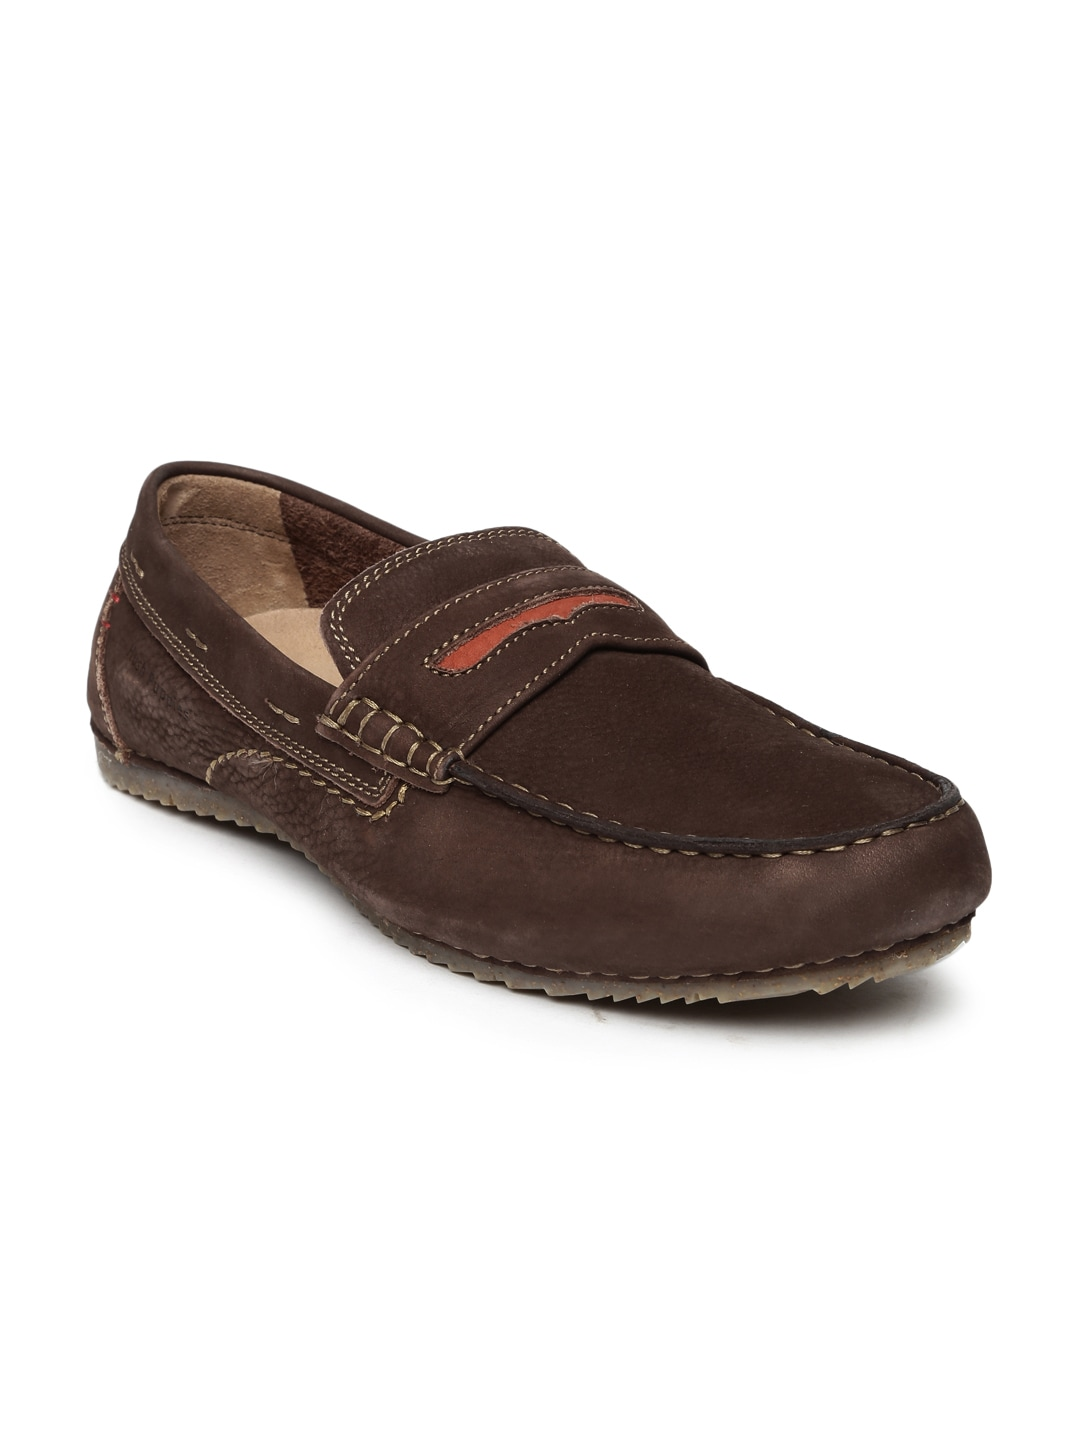 63a90941572 Hush Puppies Ceil Penny Brown Moccasins for women - Get stylish ...